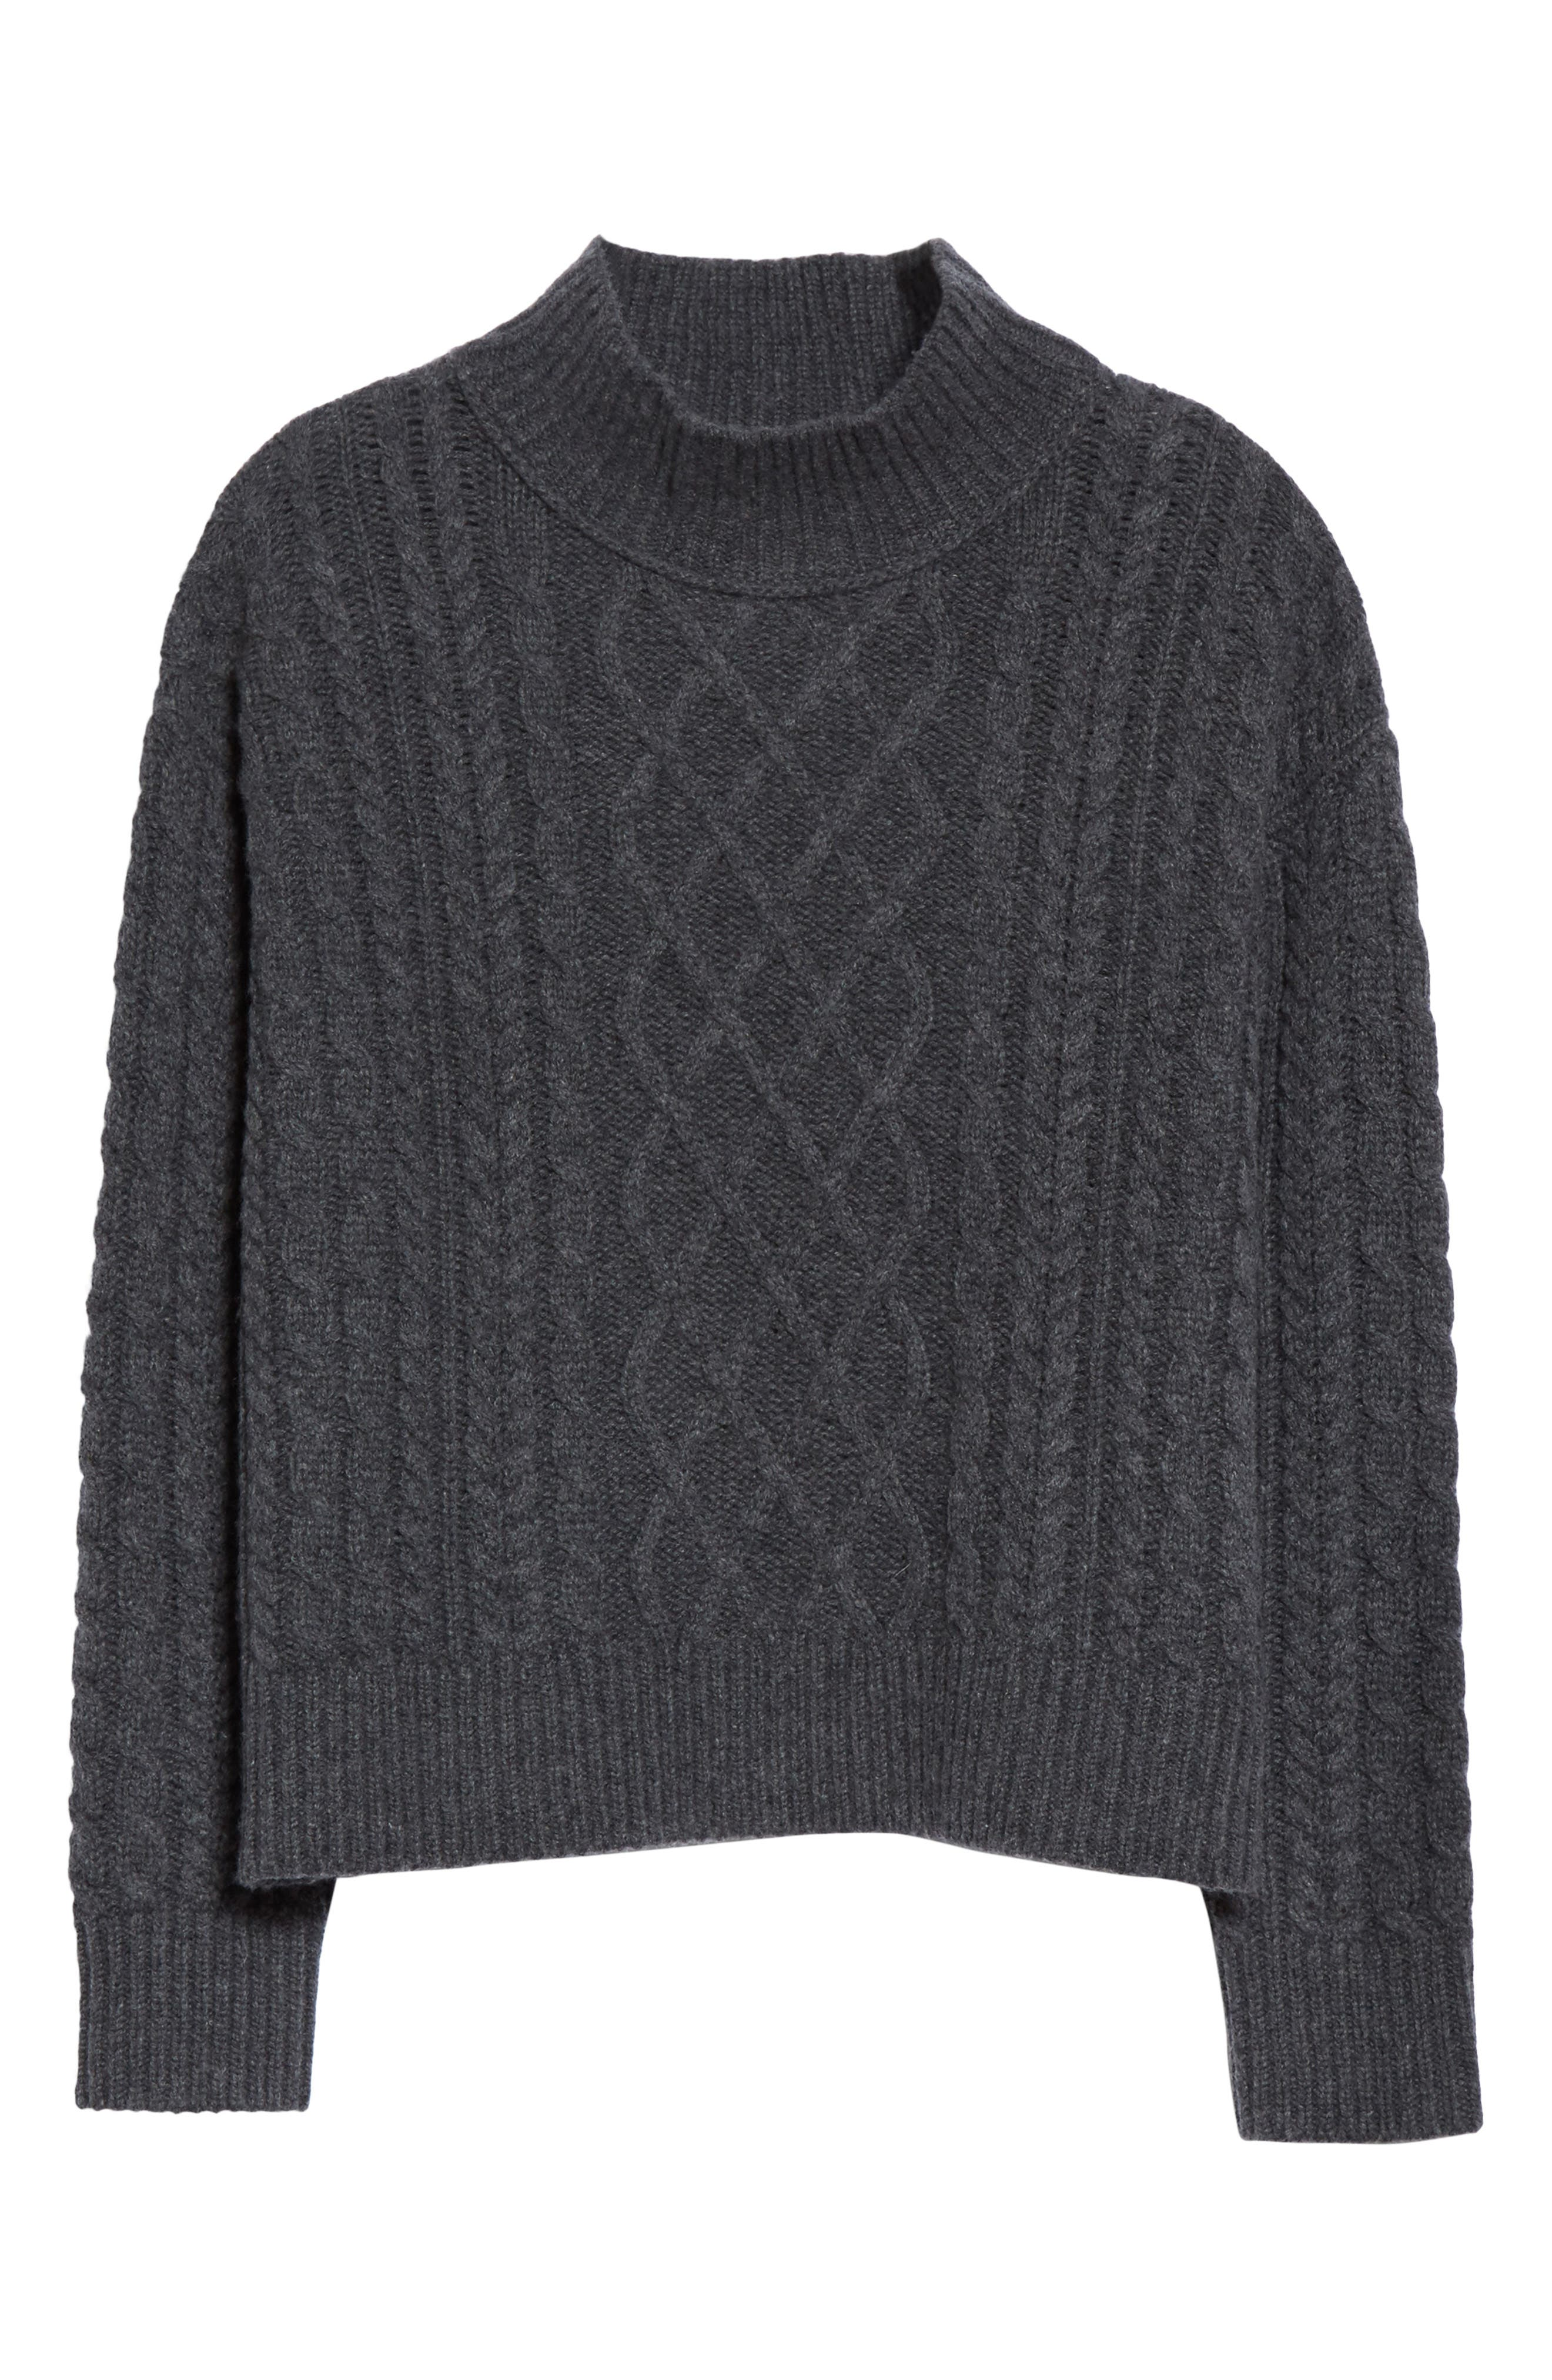 Alternate Image 7  - FRAME Wool & Cashmere Cable Knit Crop Sweater (Nordstrom Exclusive)